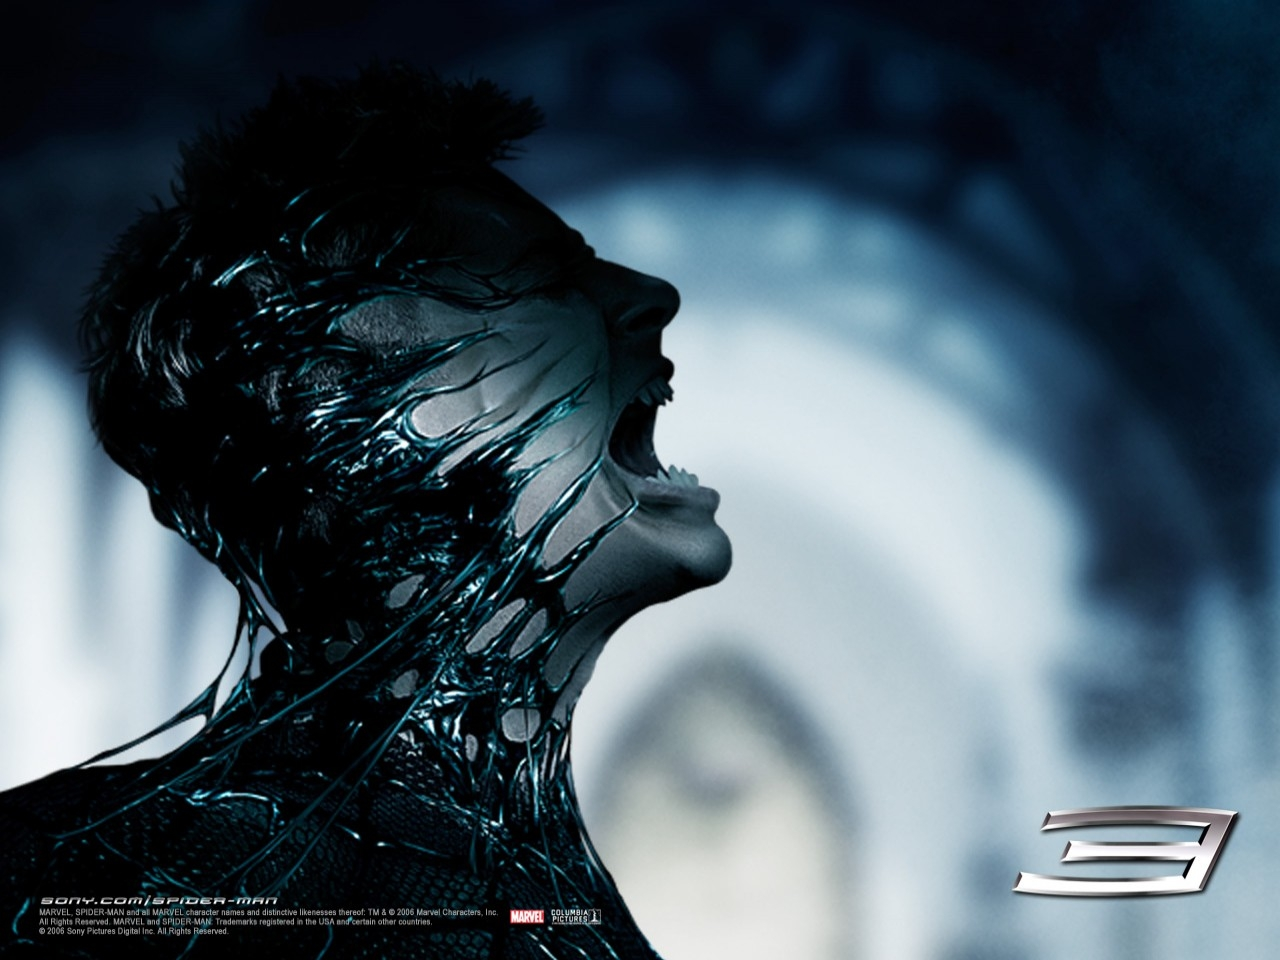 Un wallpaper del film Spider-Man 3